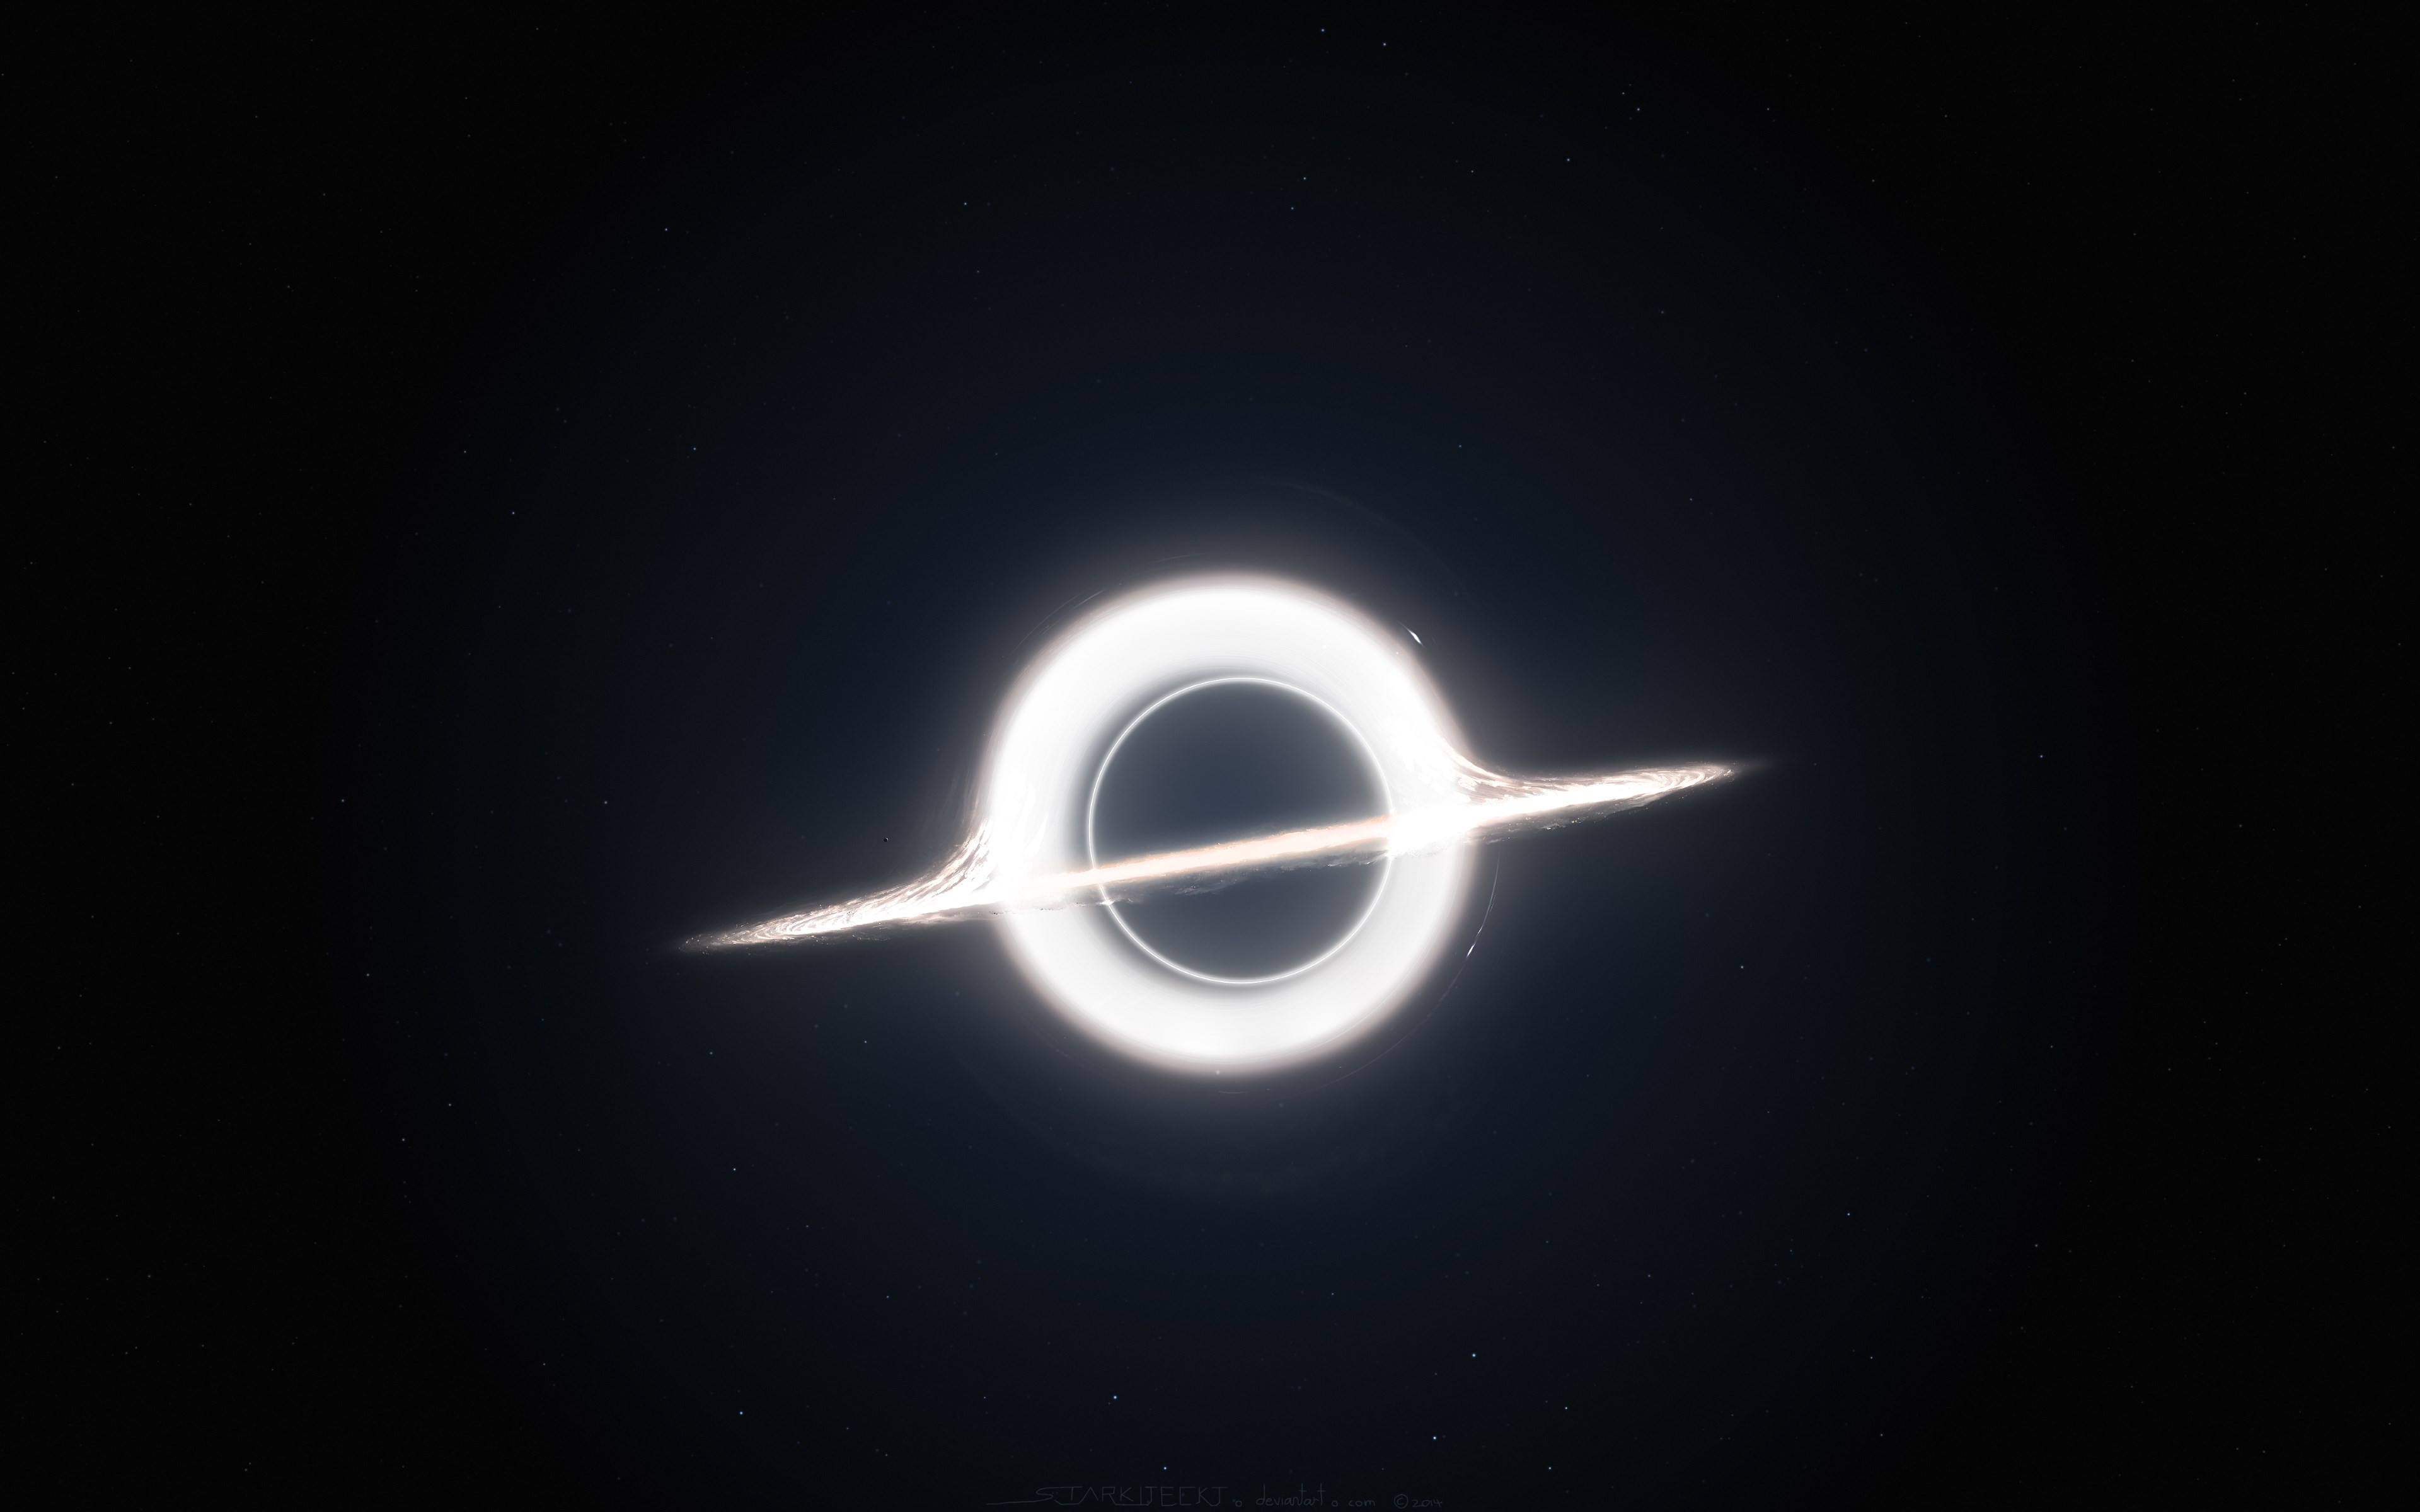 Gargantua inspired by Interstellar movie | 3840x2400 wallpaper